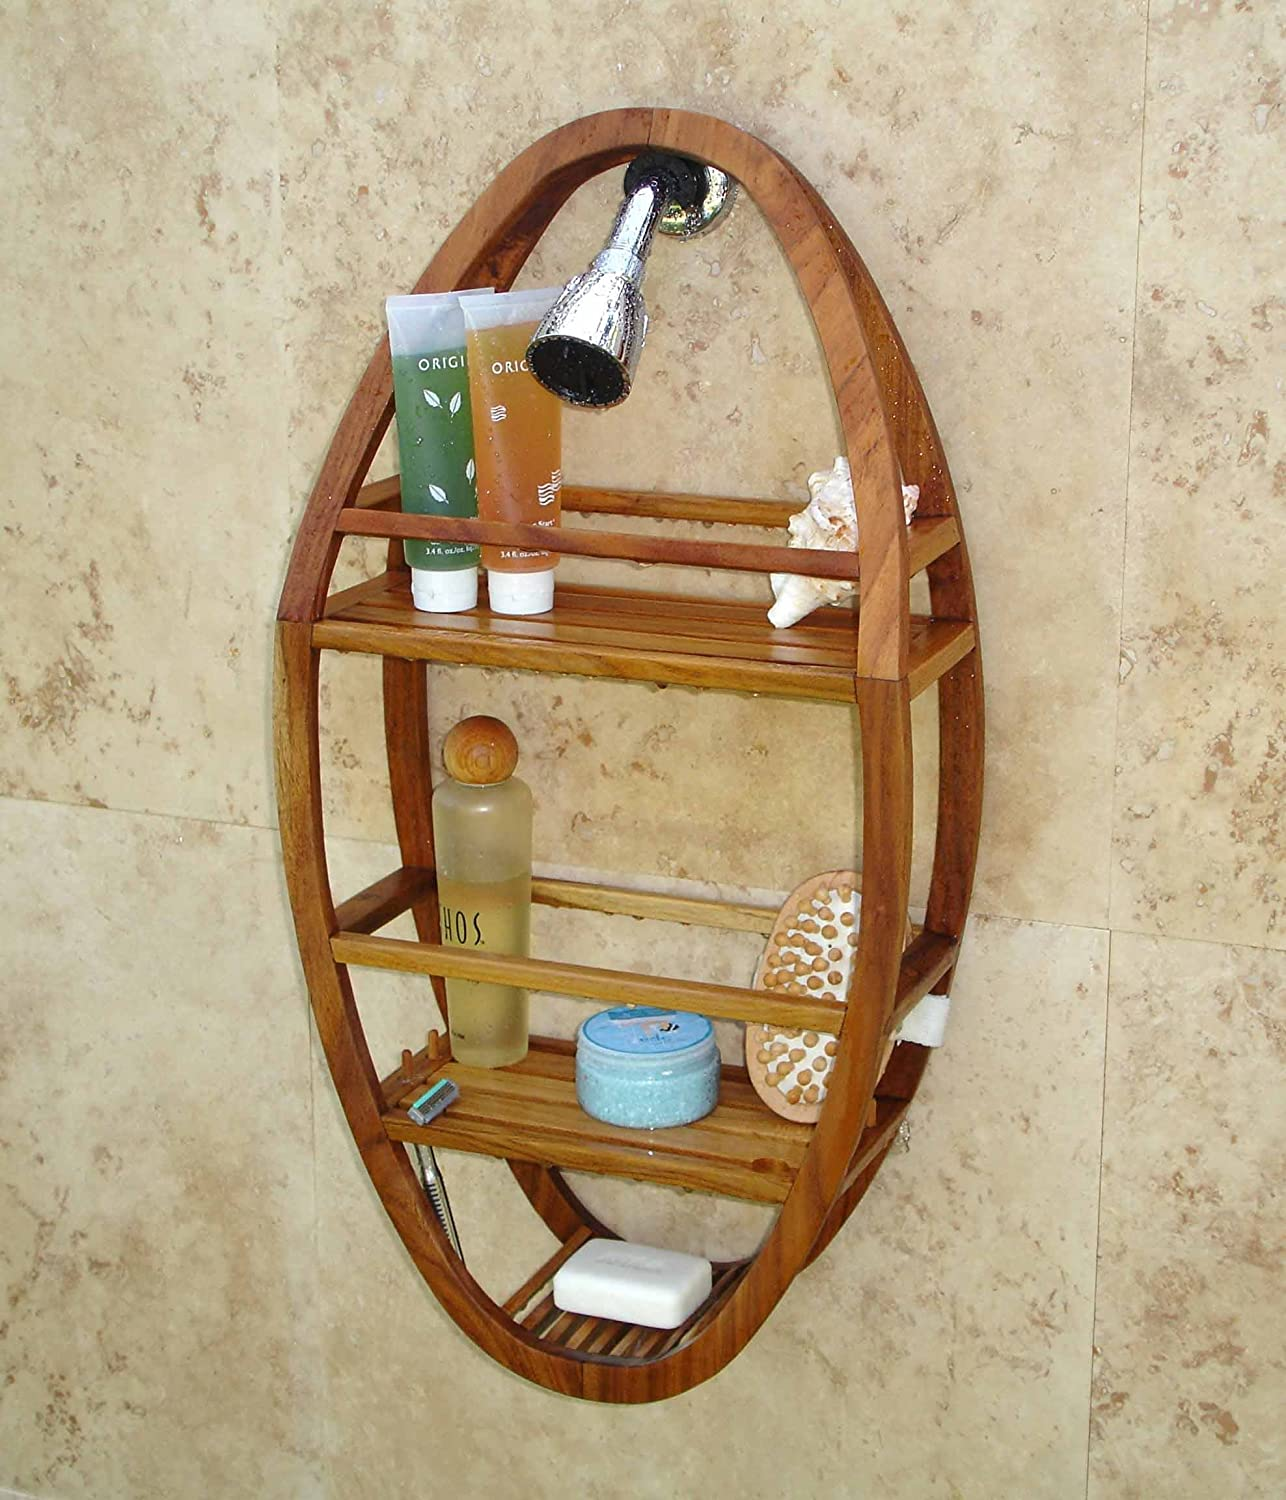 Amazon.com: Patented Moa Oval Teak Shower Organizer: Home & Kitchen